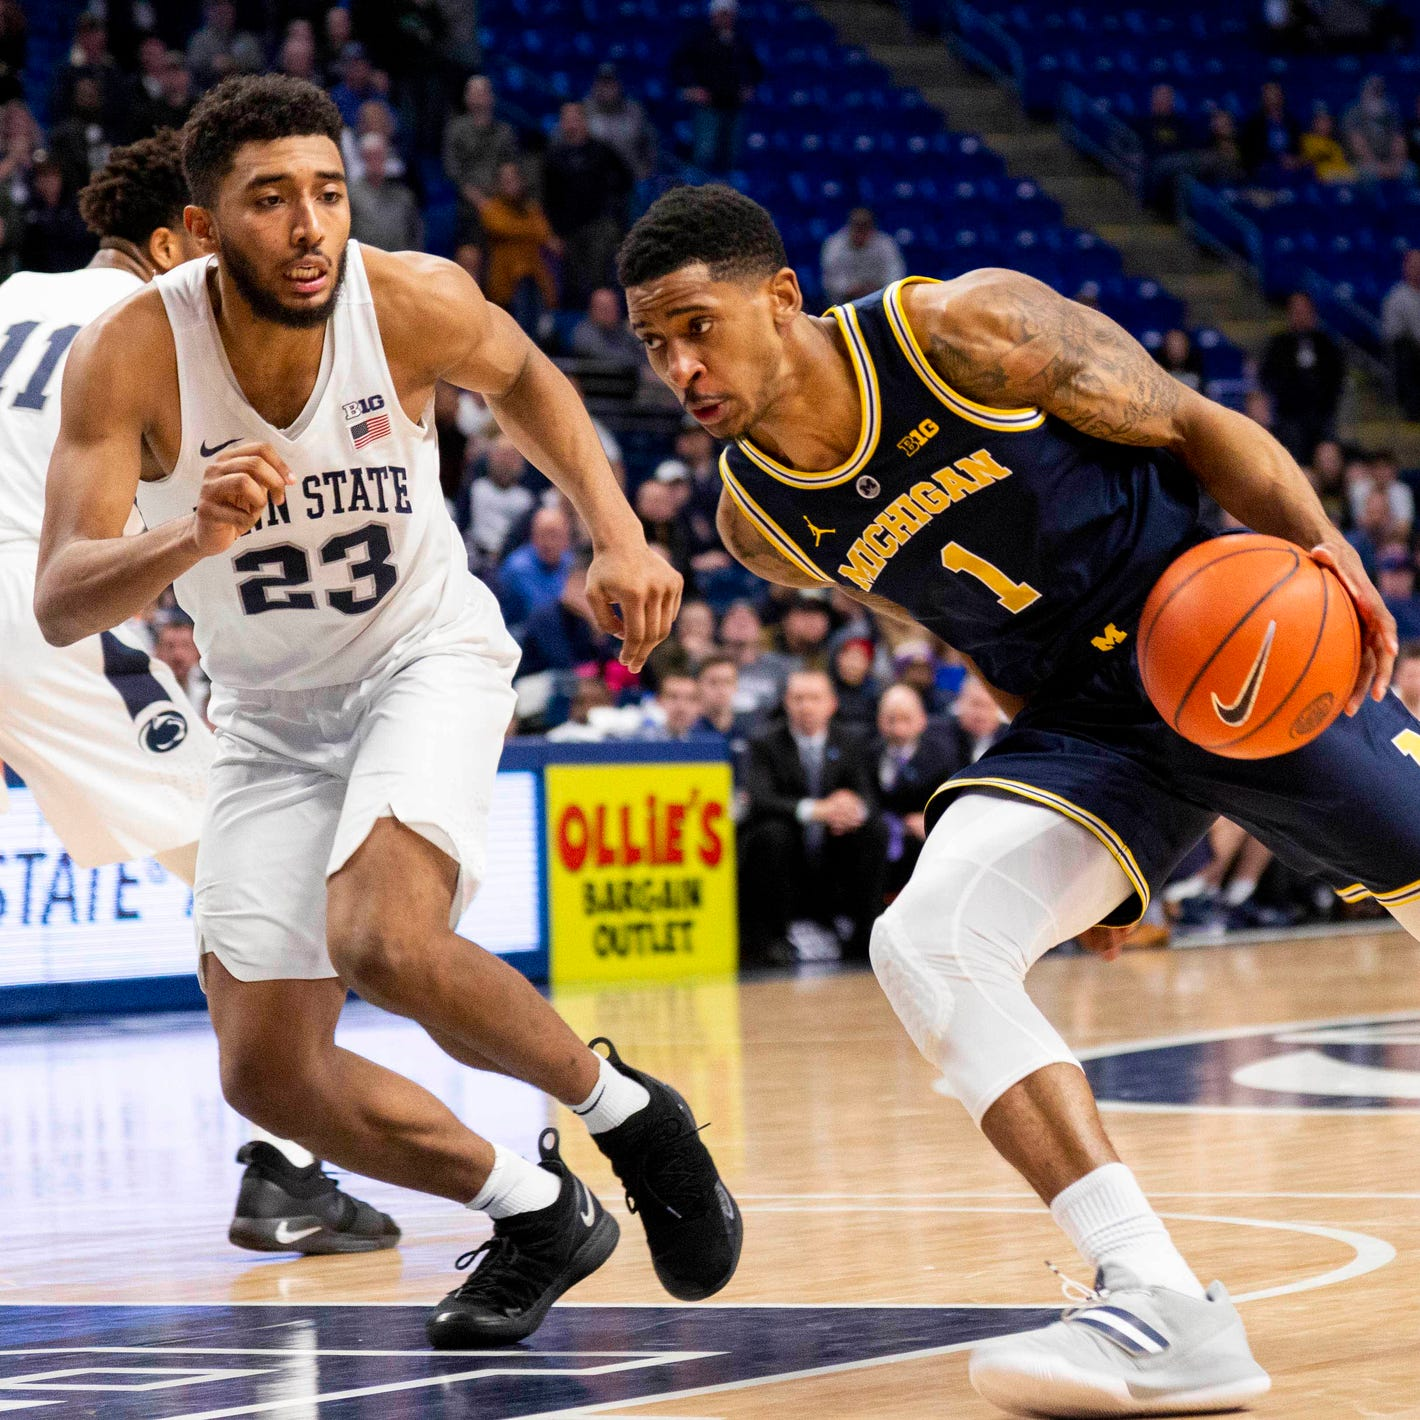 Michigan basketball upset by last-place Penn State: 'They punked us'